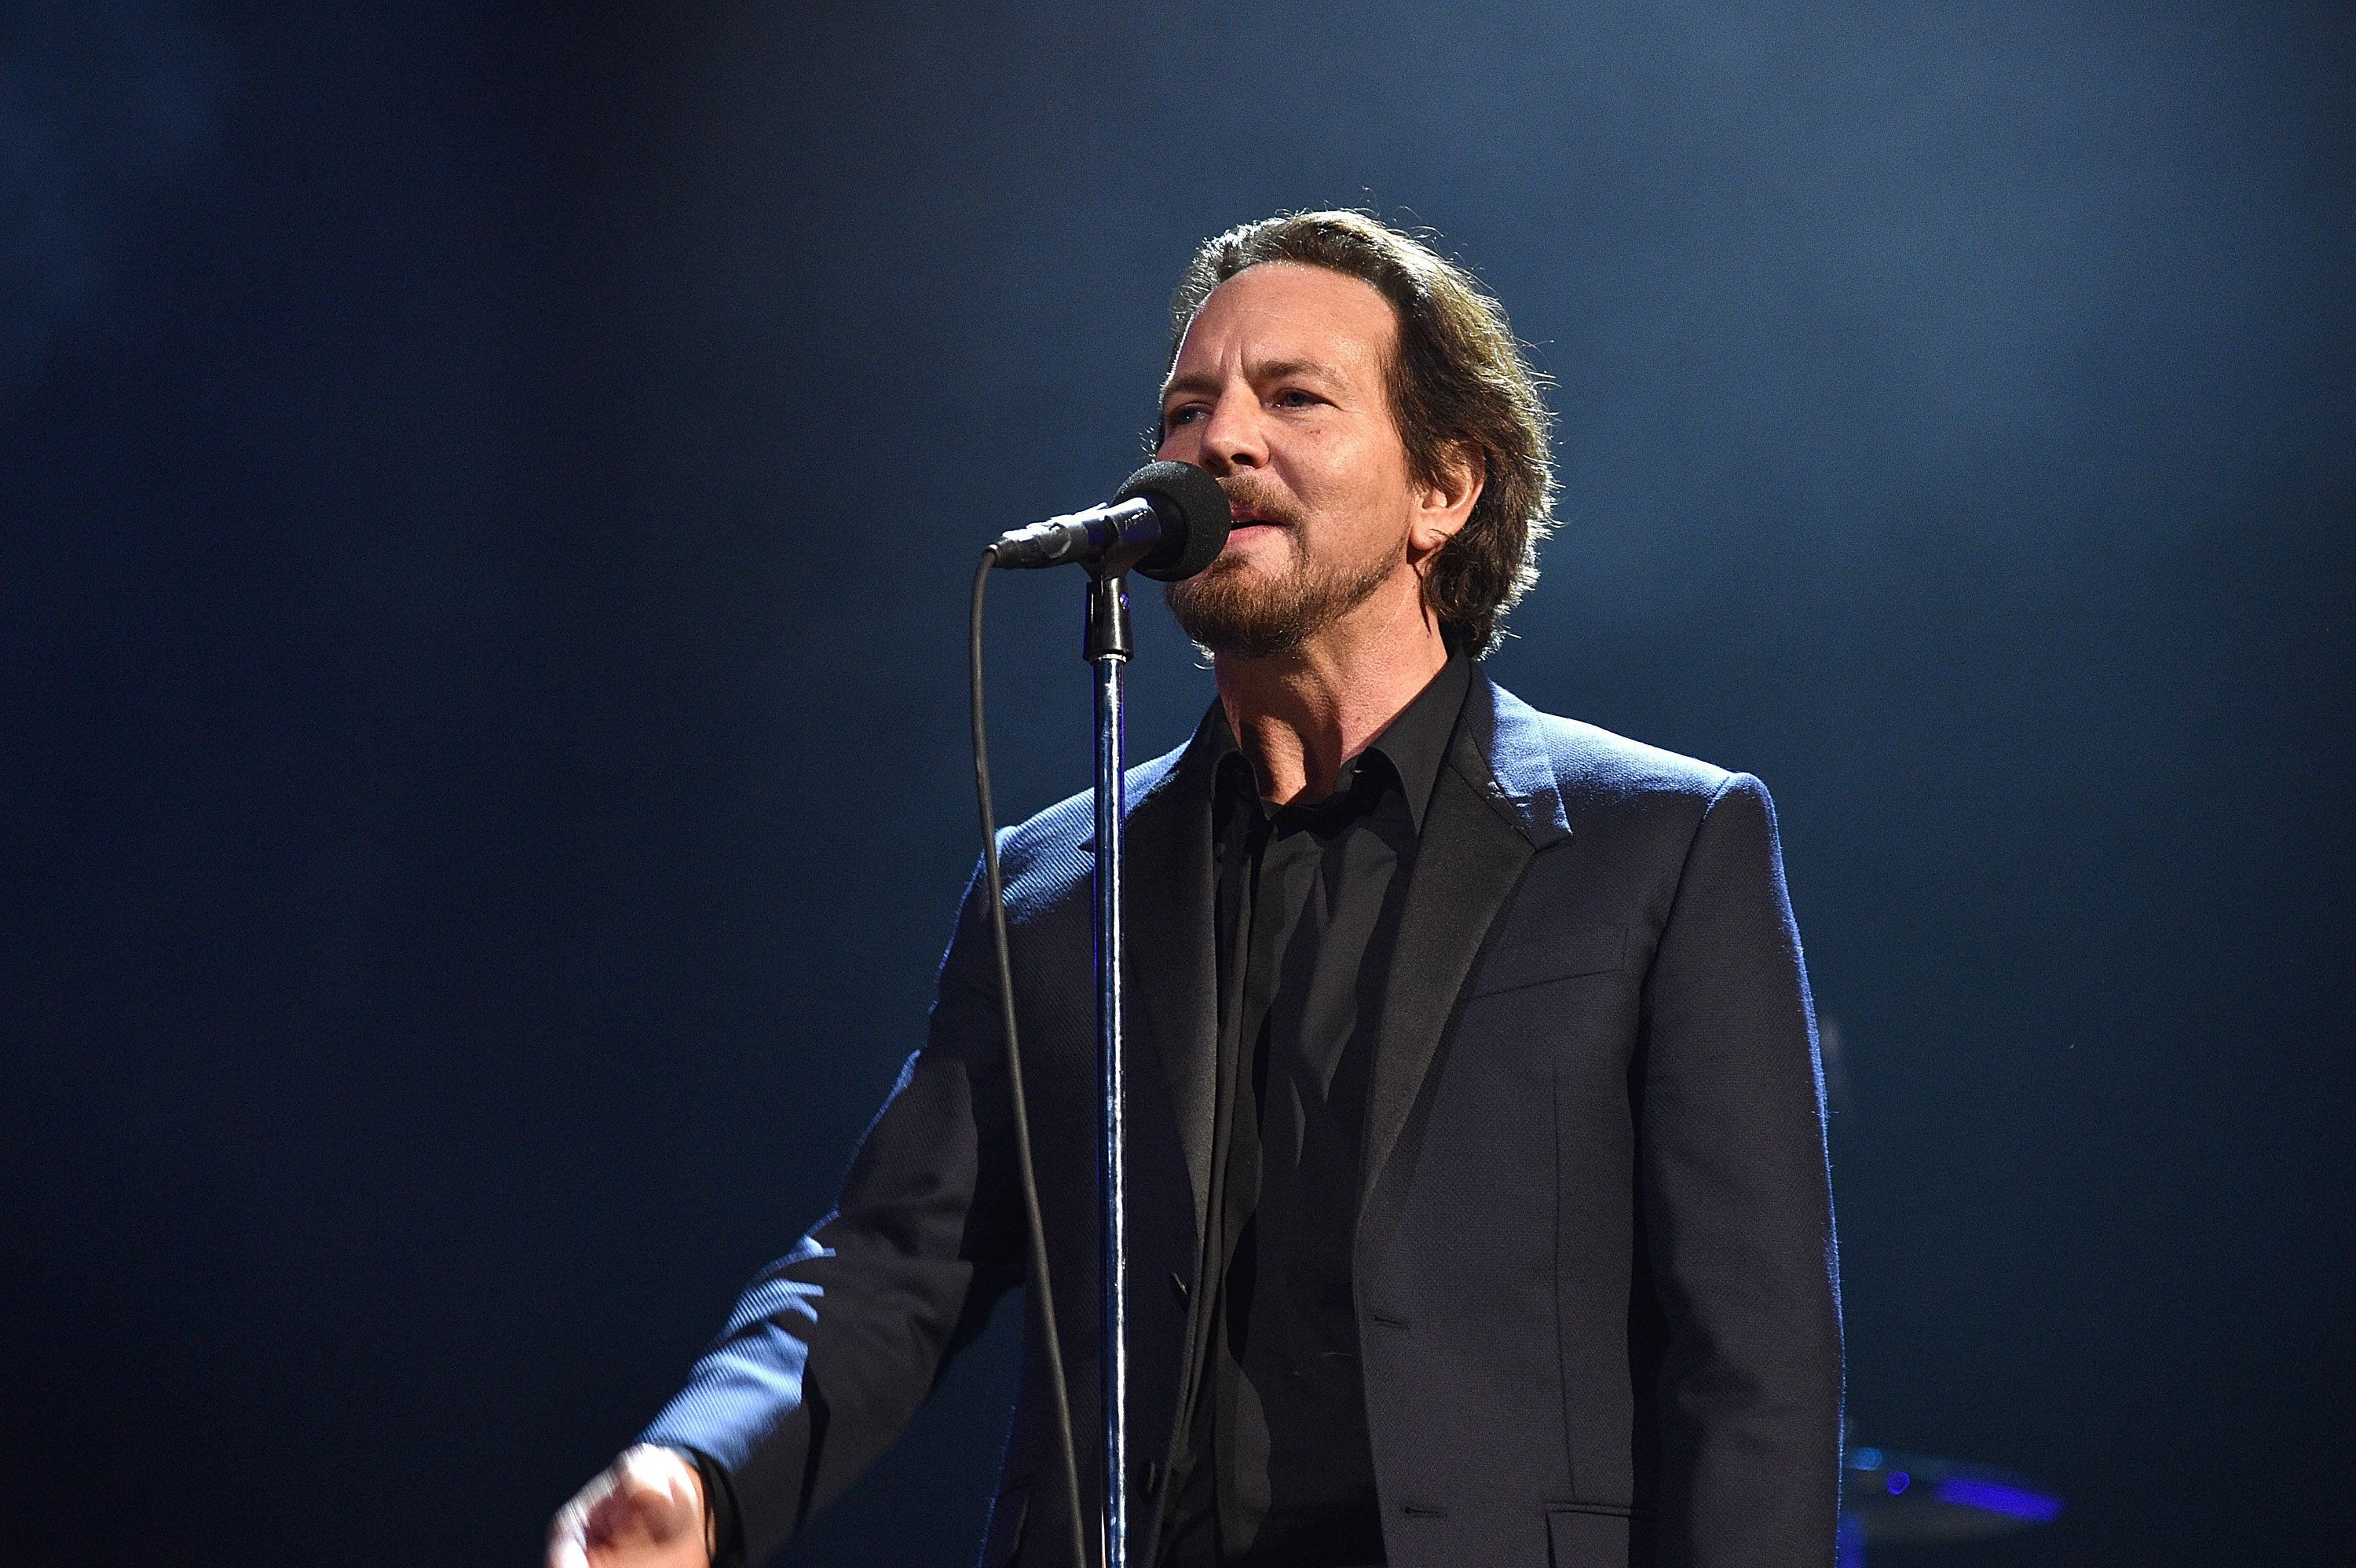 NEW YORK, NY - APRIL 07:  Inductee Eddie Vedder of Pearl Jam performs onstage during the 32nd Annual Rock & Roll Hall Of Fame Induction Ceremony at Barclays Center on April 7, 2017 in New York City. The broadcast will air on Saturday, April 29, 2017 at 8:00 PM ET/PT on HBO.  (Photo by Kevin Mazur/WireImage for Rock and Roll Hall of Fame)